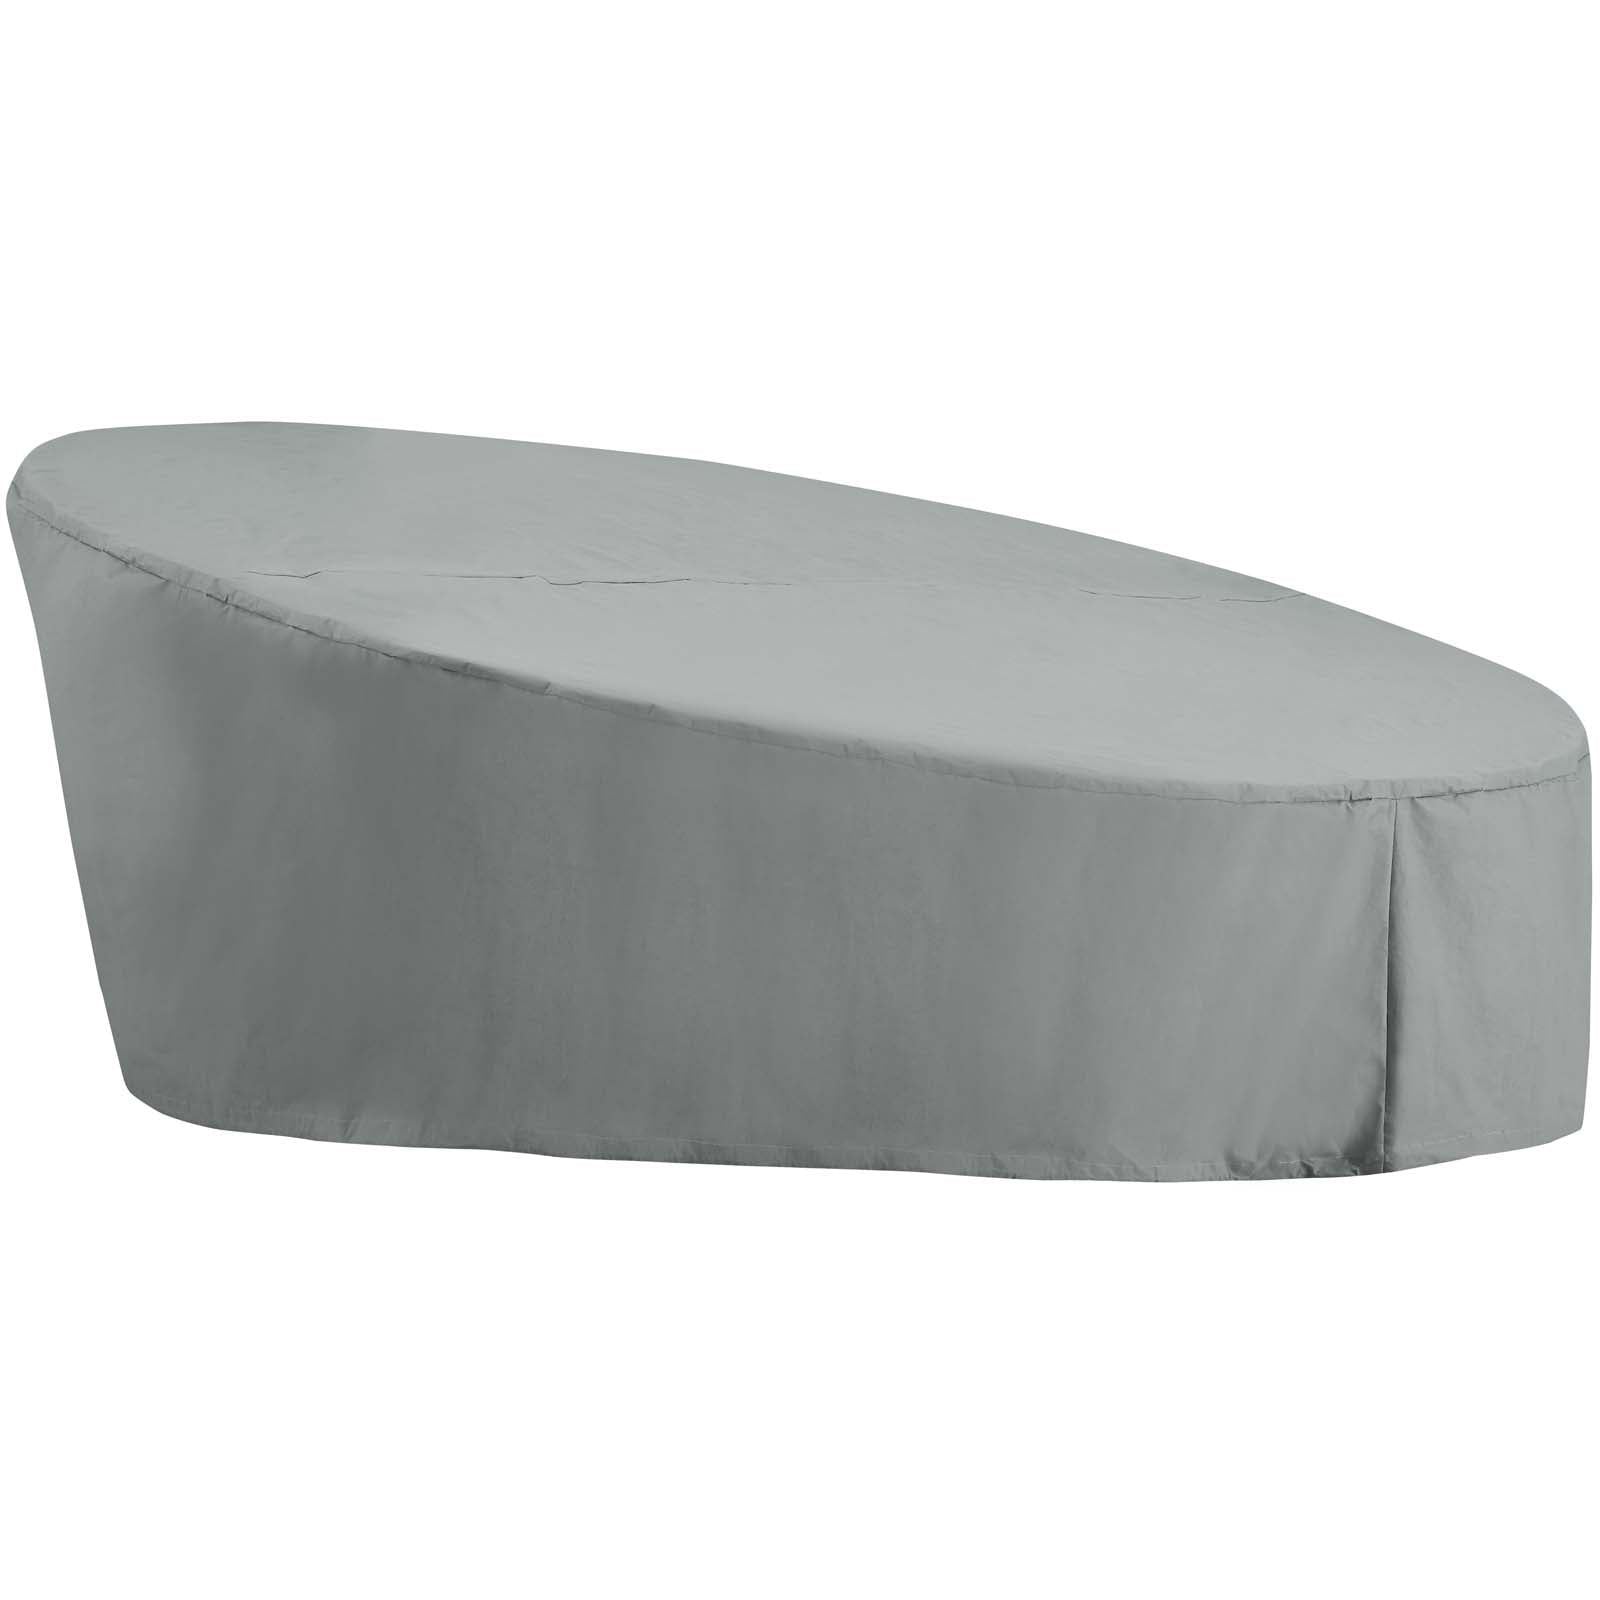 Immerse Convene / Sojourn / Summon Daybed Outdoor Patio Furniture Cover